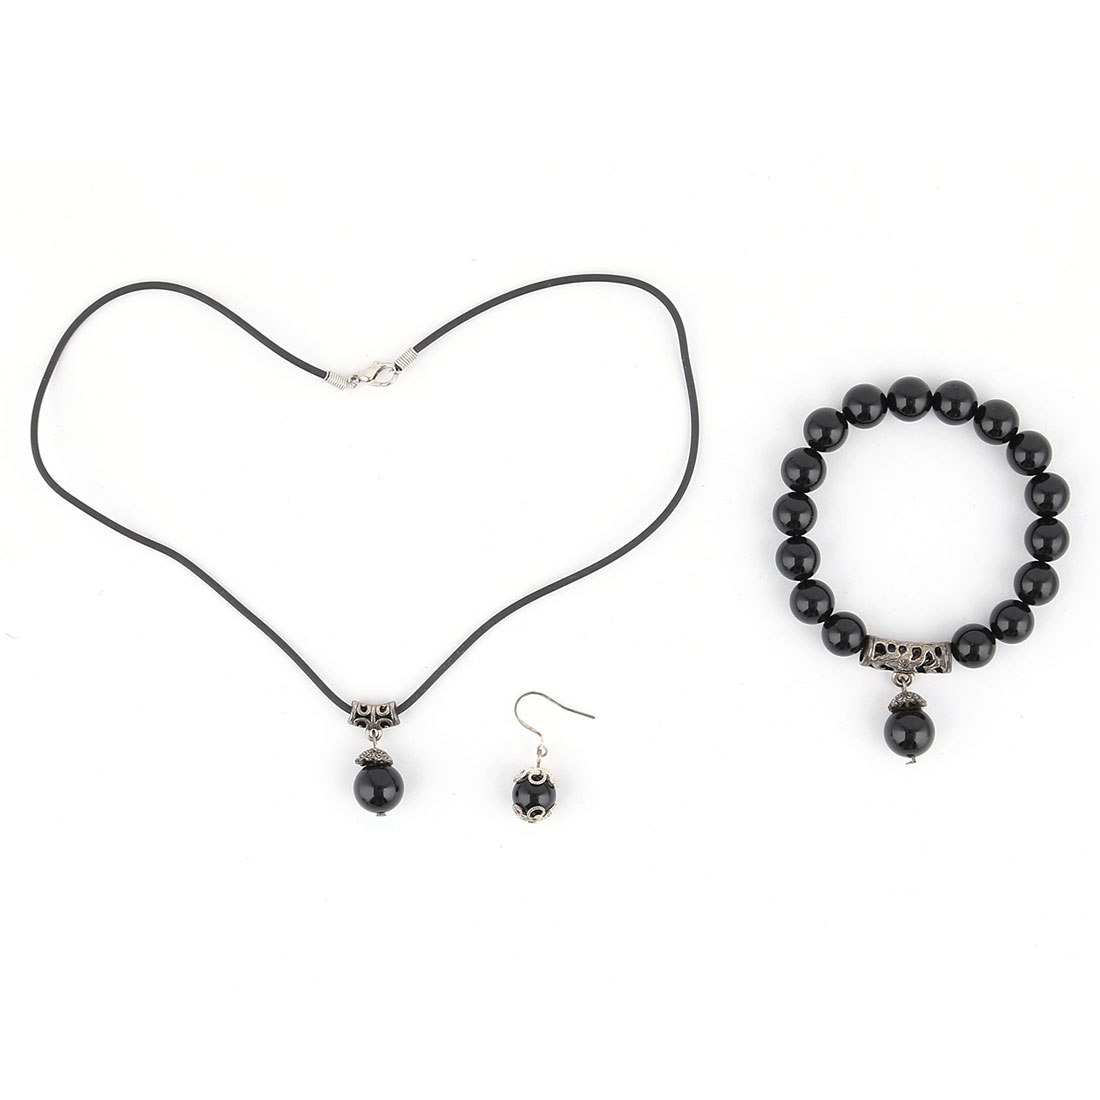 Women Plastic Beads Design Necklace Bracelet Bangle Hook Earrings Set 3 in 1 Black